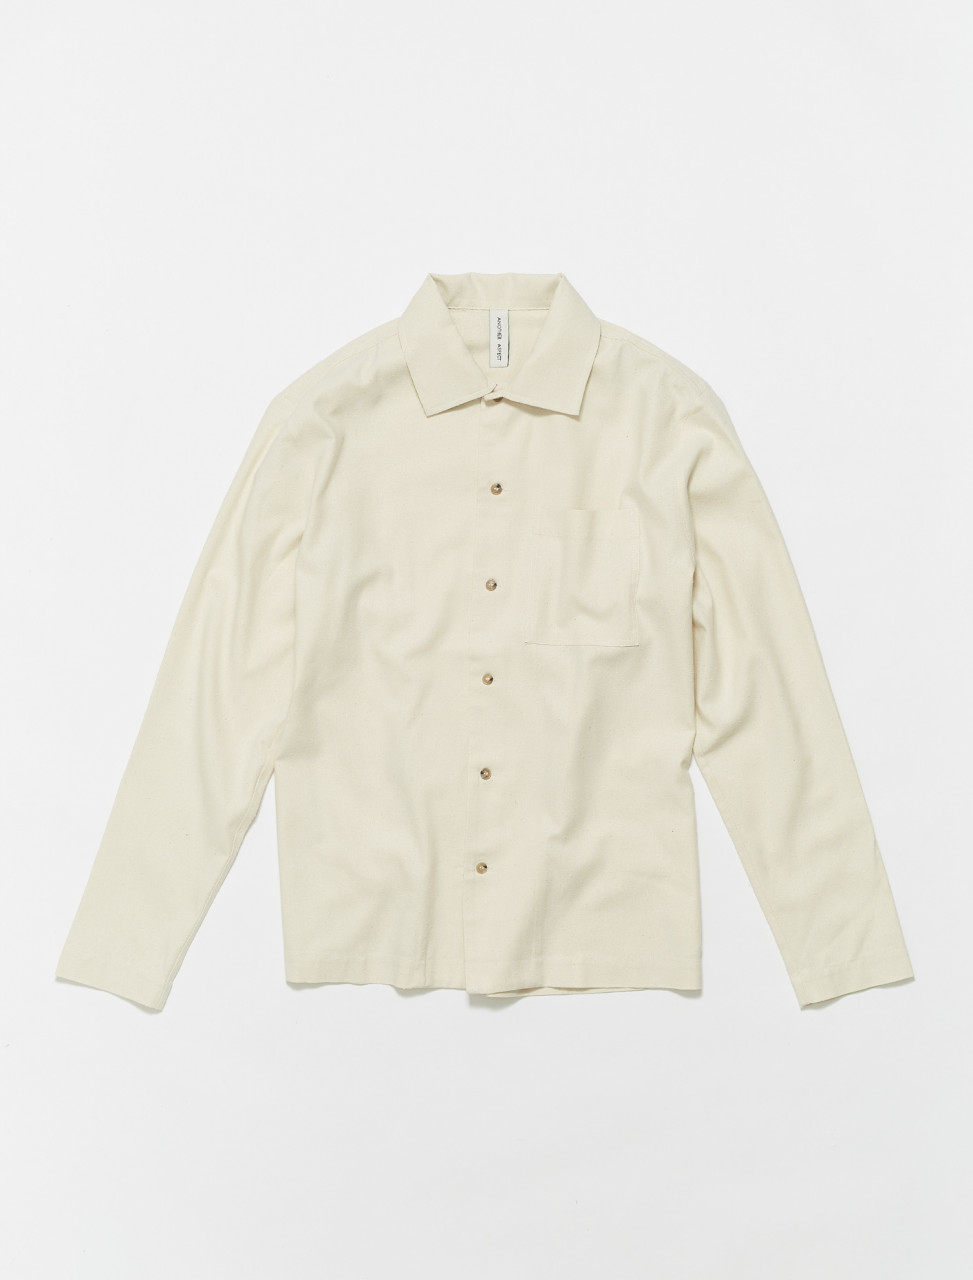 202020-050 ANOTHER ASPECT ANOTHER SHIRT 2.1 NATURAL